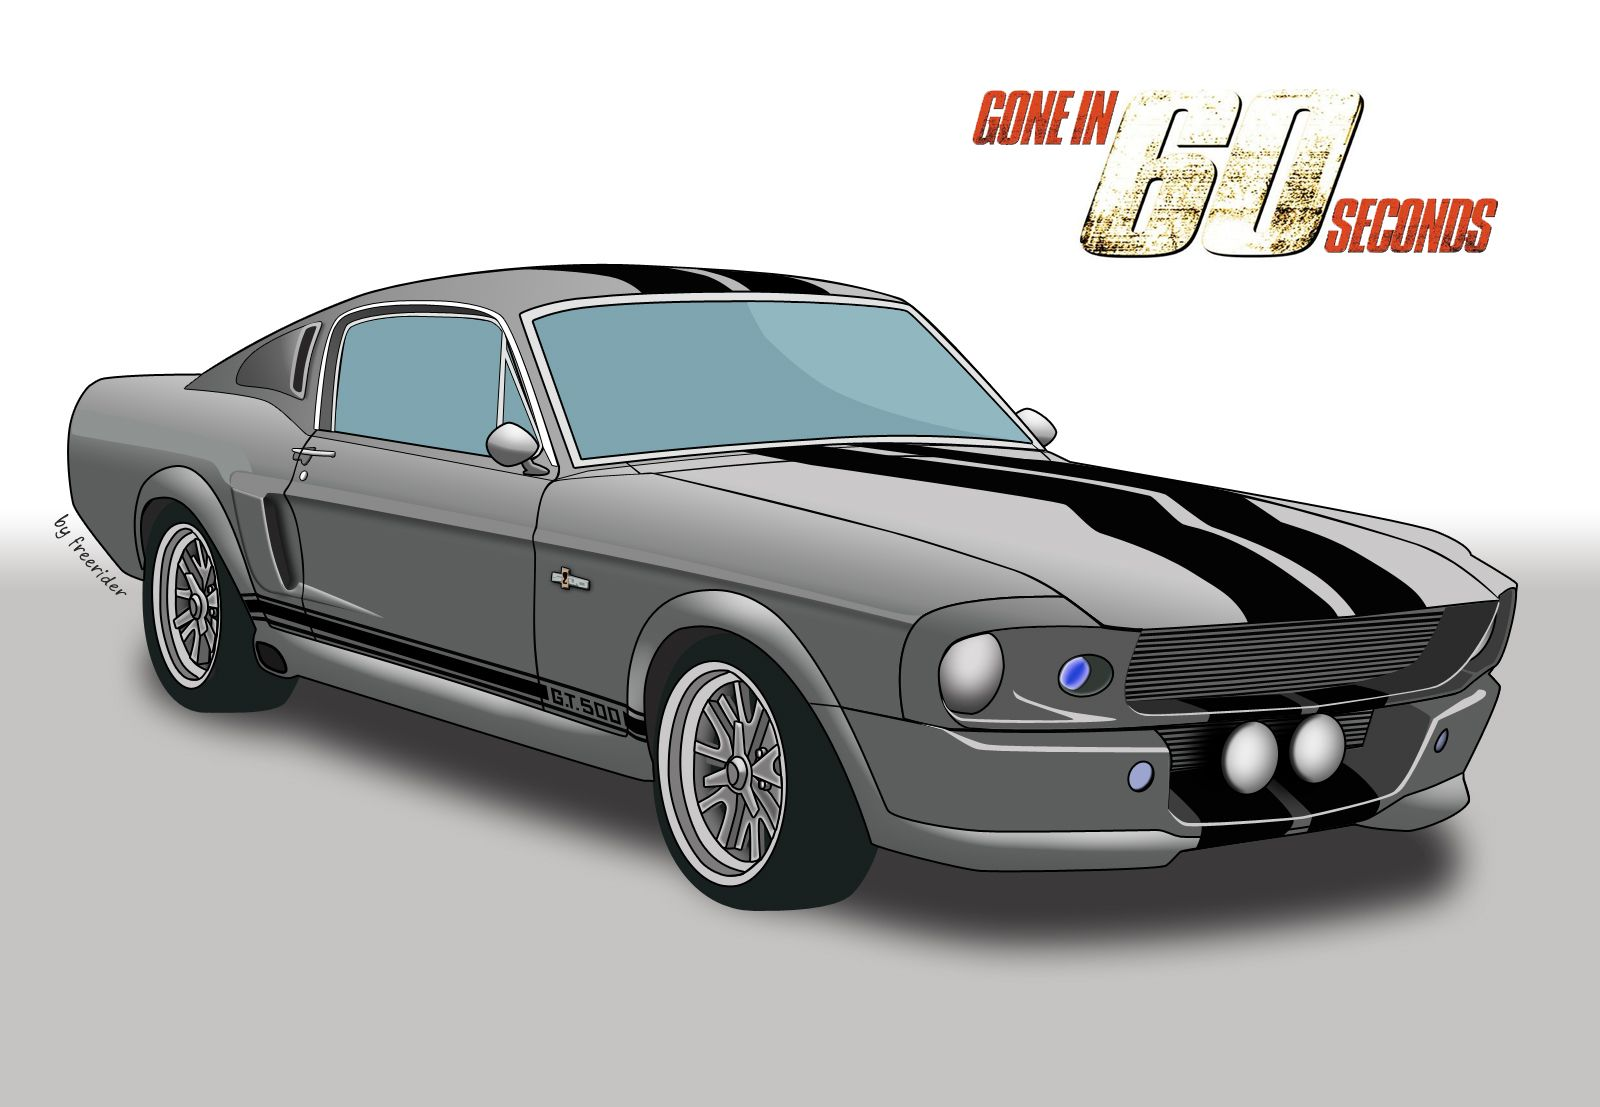 1967 Ford Mustang Shelby GT500, Eleanor, Gone in 60 seconds.